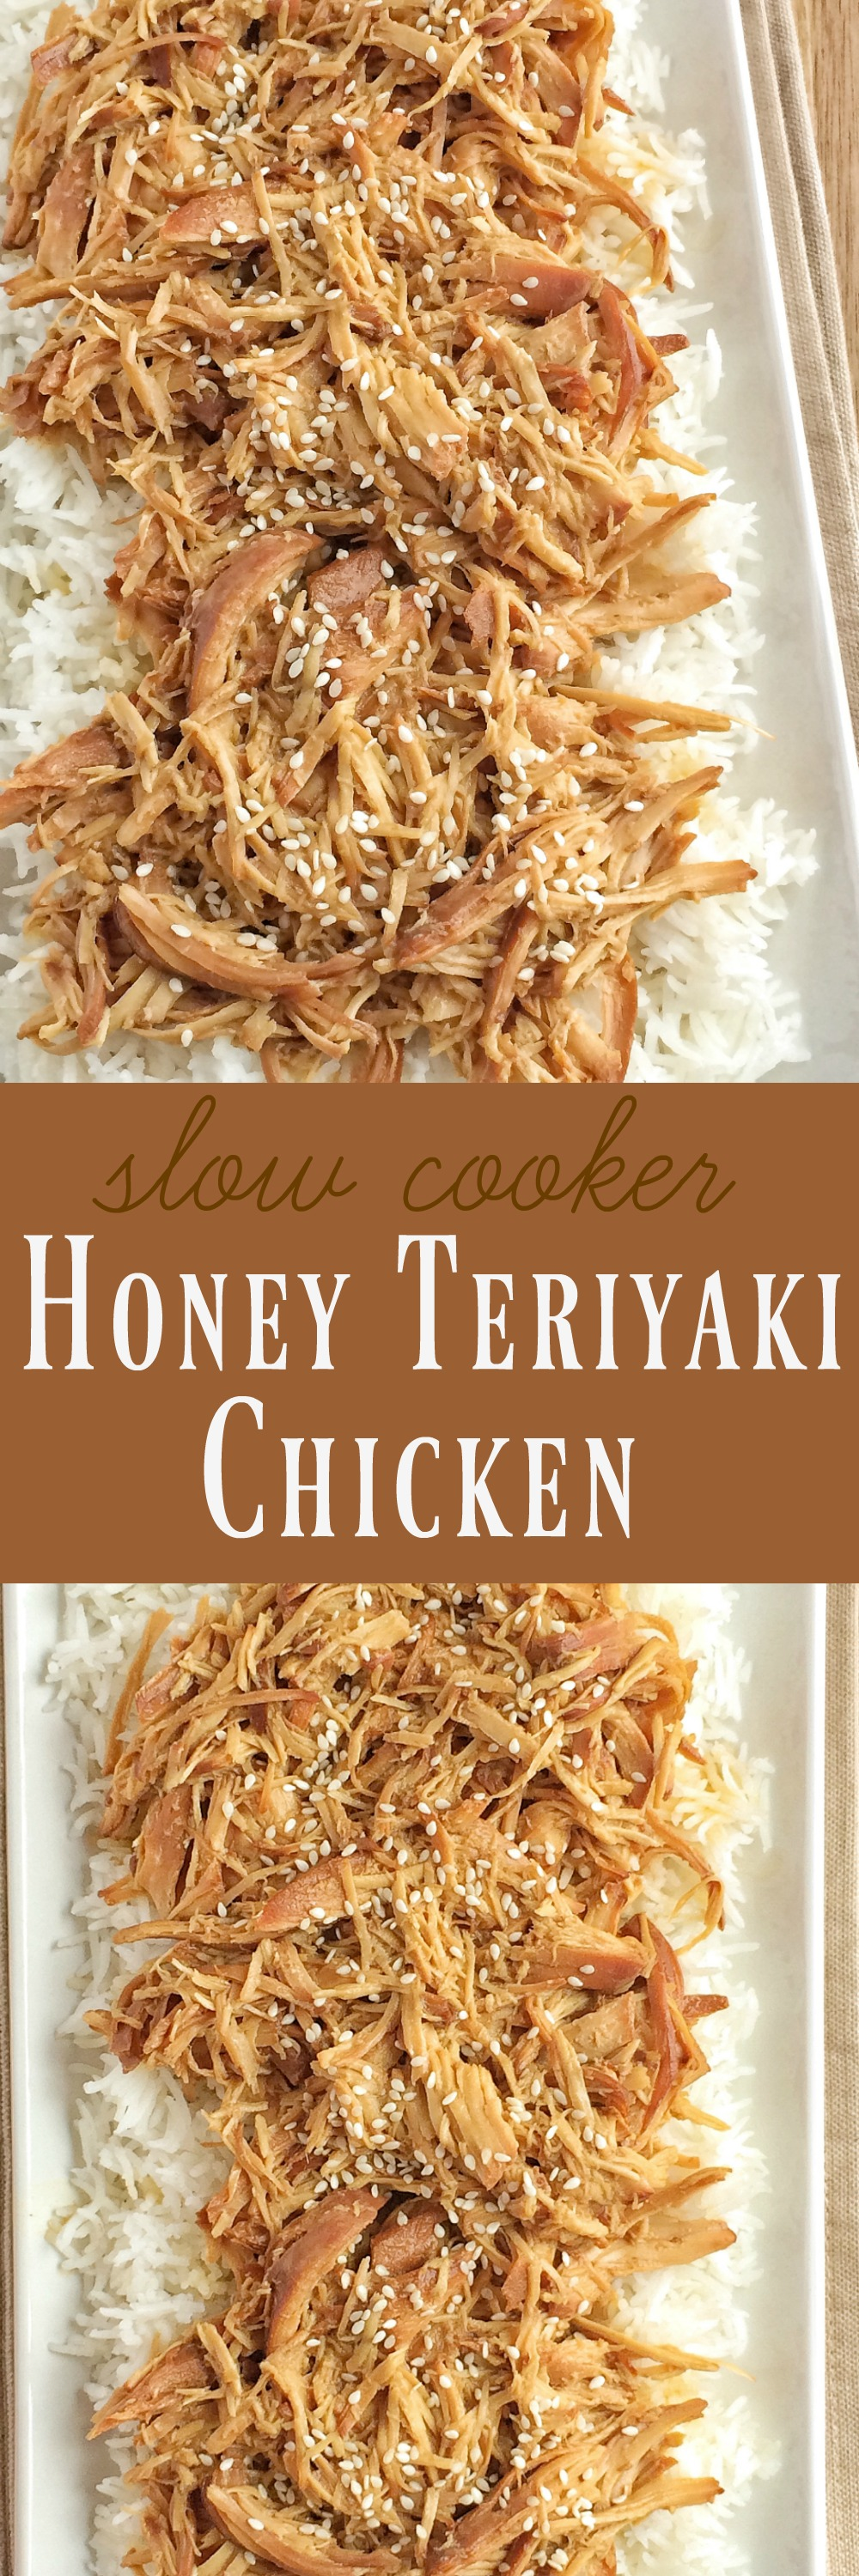 honey teriyaki sauce and some chicken is all you need! The chicken ...